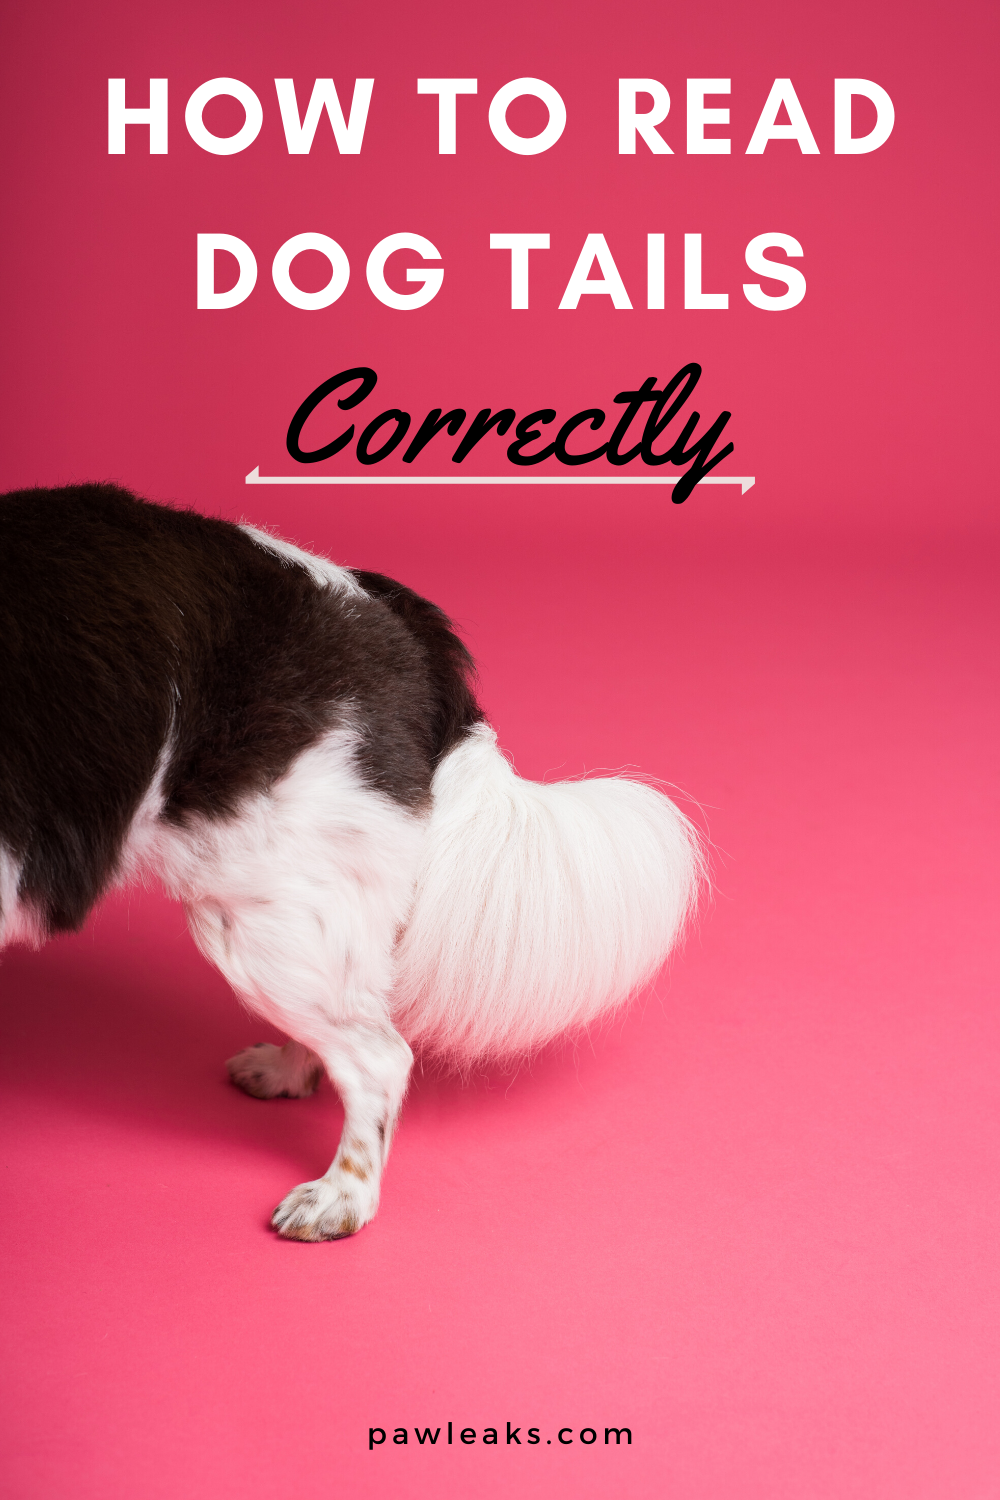 Dog Tail Down Or Up And Stiff Dog Tail Meaning Explained Dog Body Language Dog Tail Meaning Dog Tail